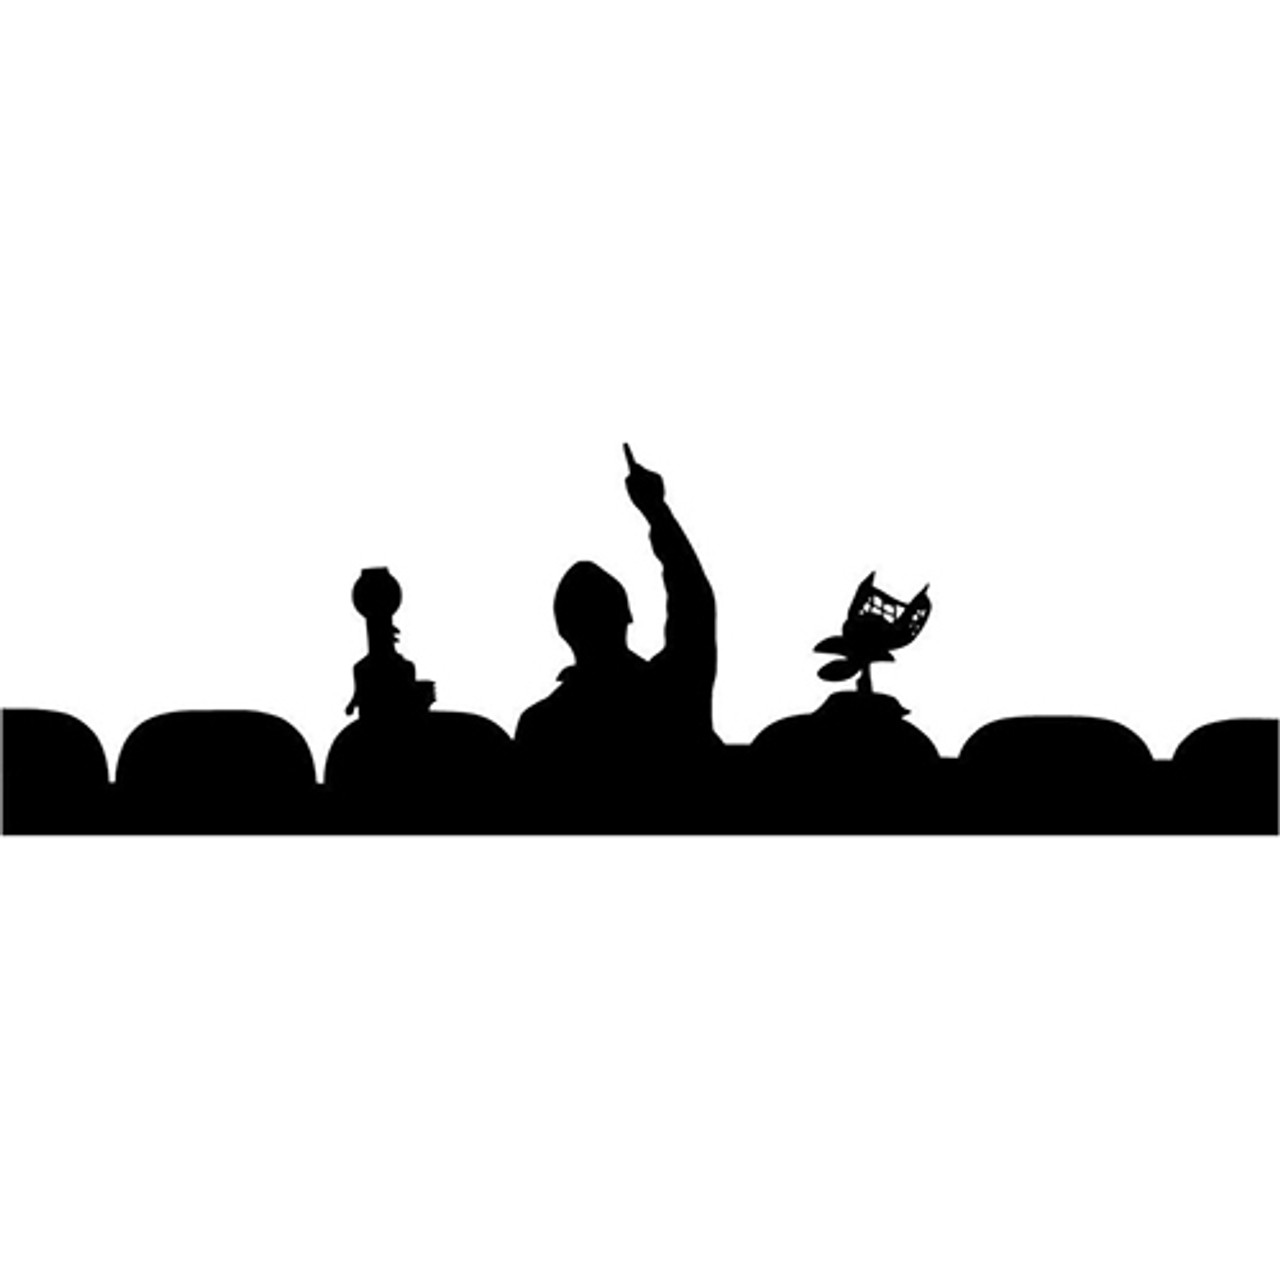 "Mystery Science Theater 5.5"" Vinyl Decal Sticker"